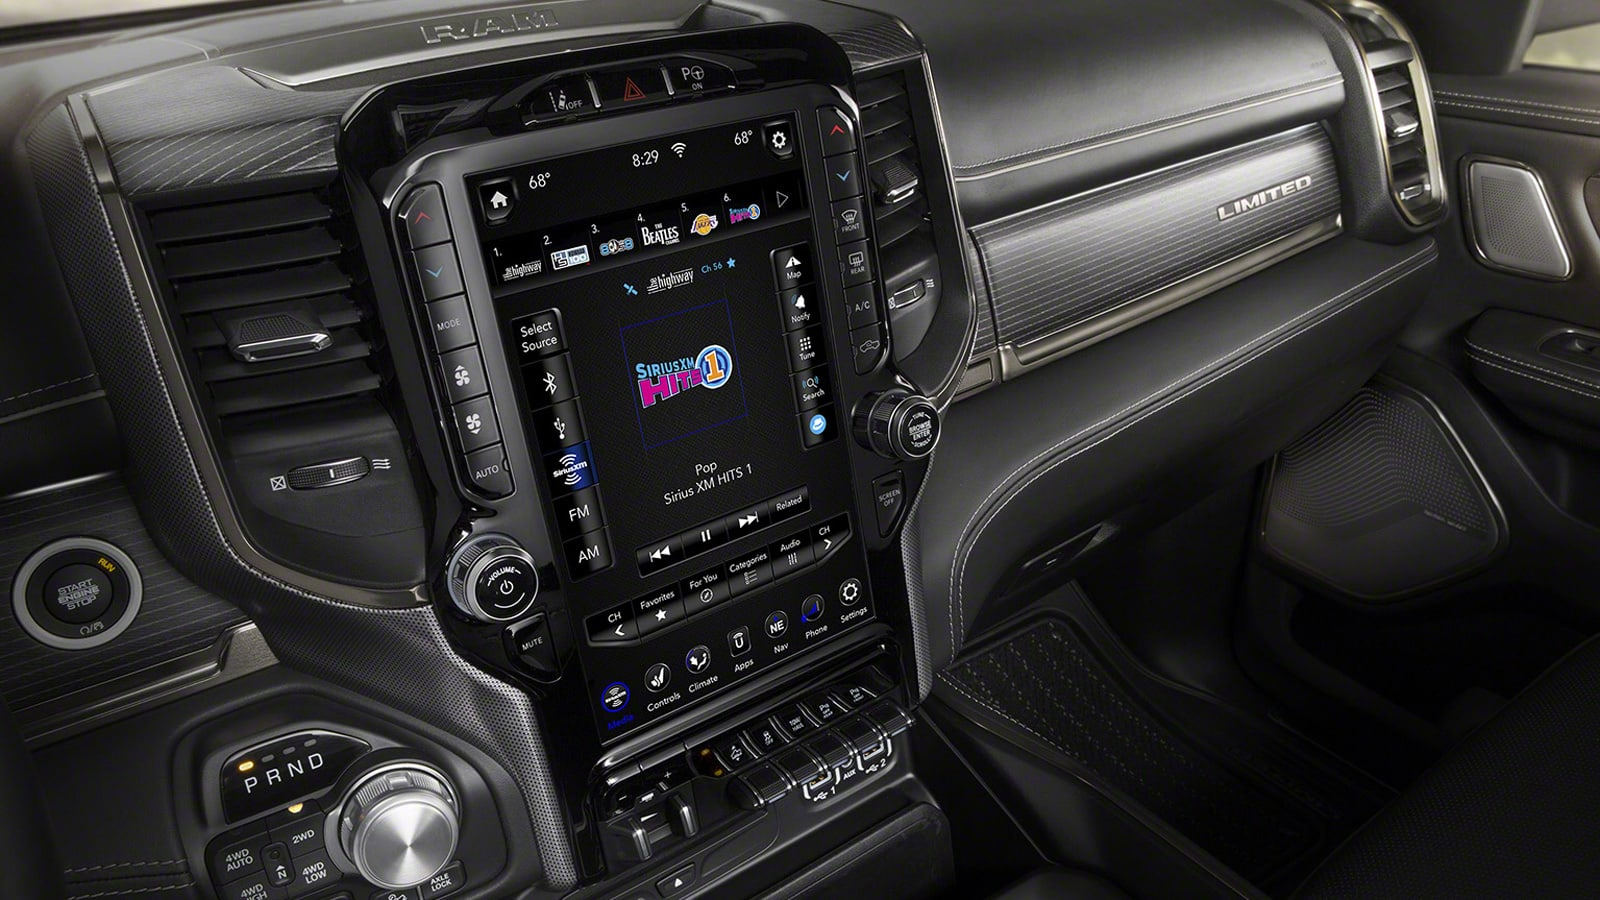 Siriusxm Adds Streaming Style Features To Its In Car Radio Service